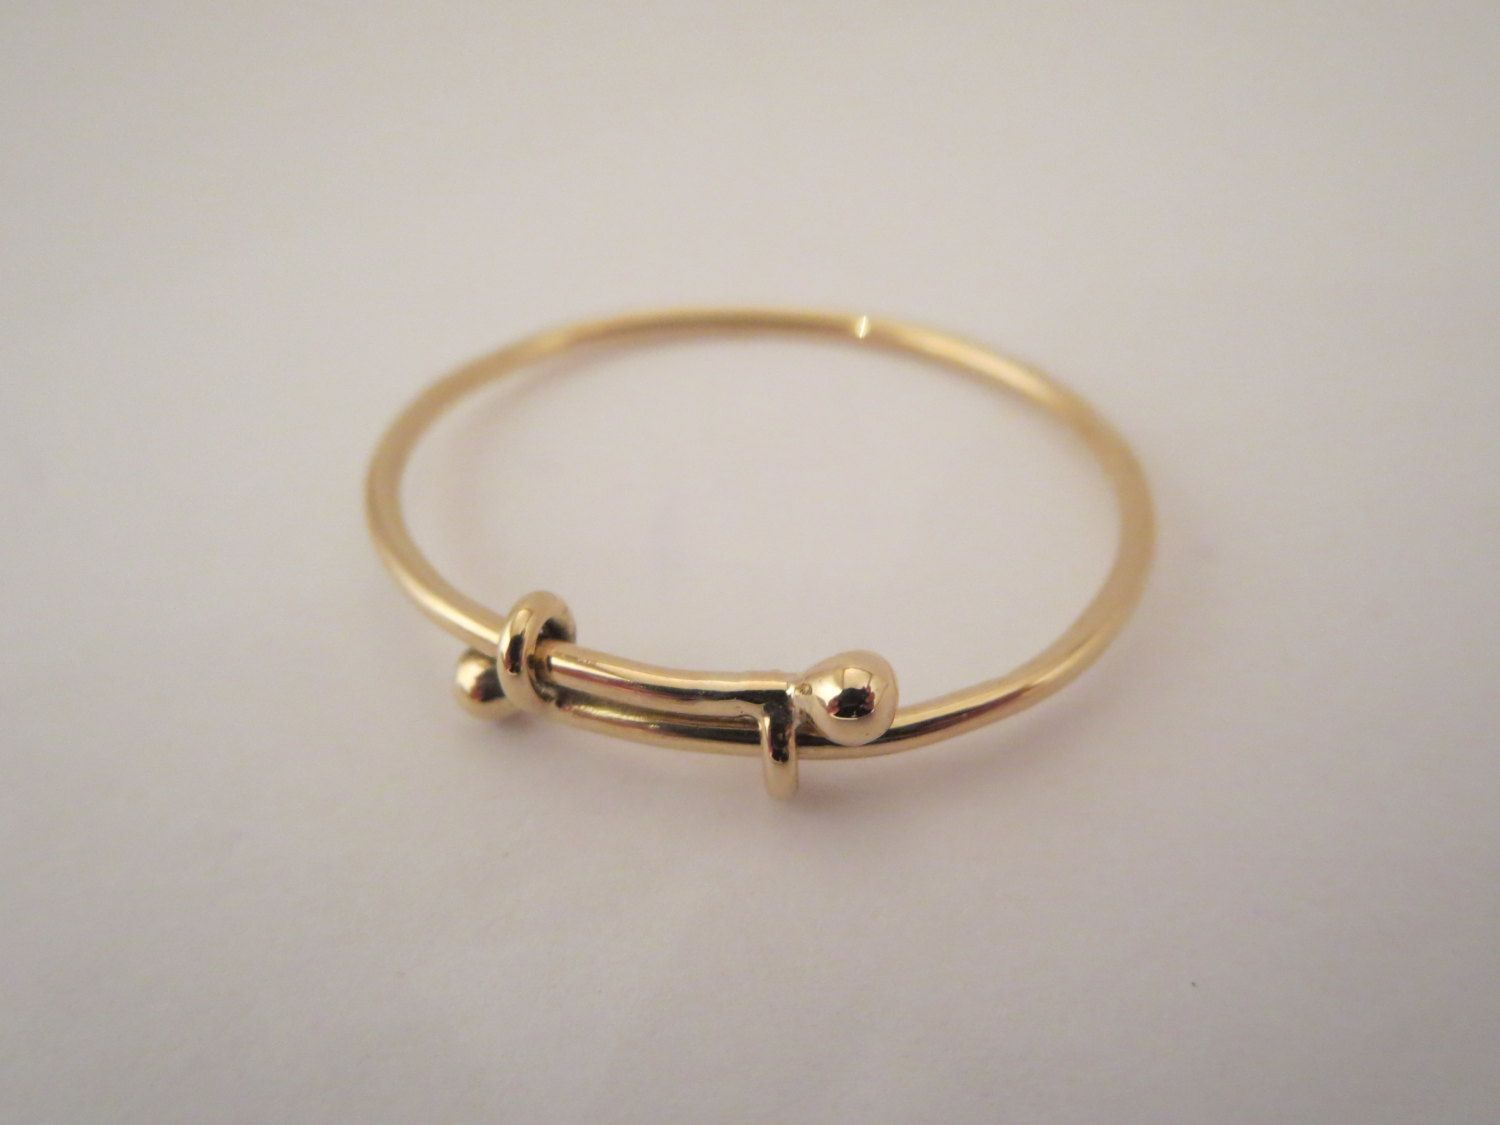 7bd9593f86c67 Adorable expandable baby bangle bracelet in solid 14k gold Extremely ...